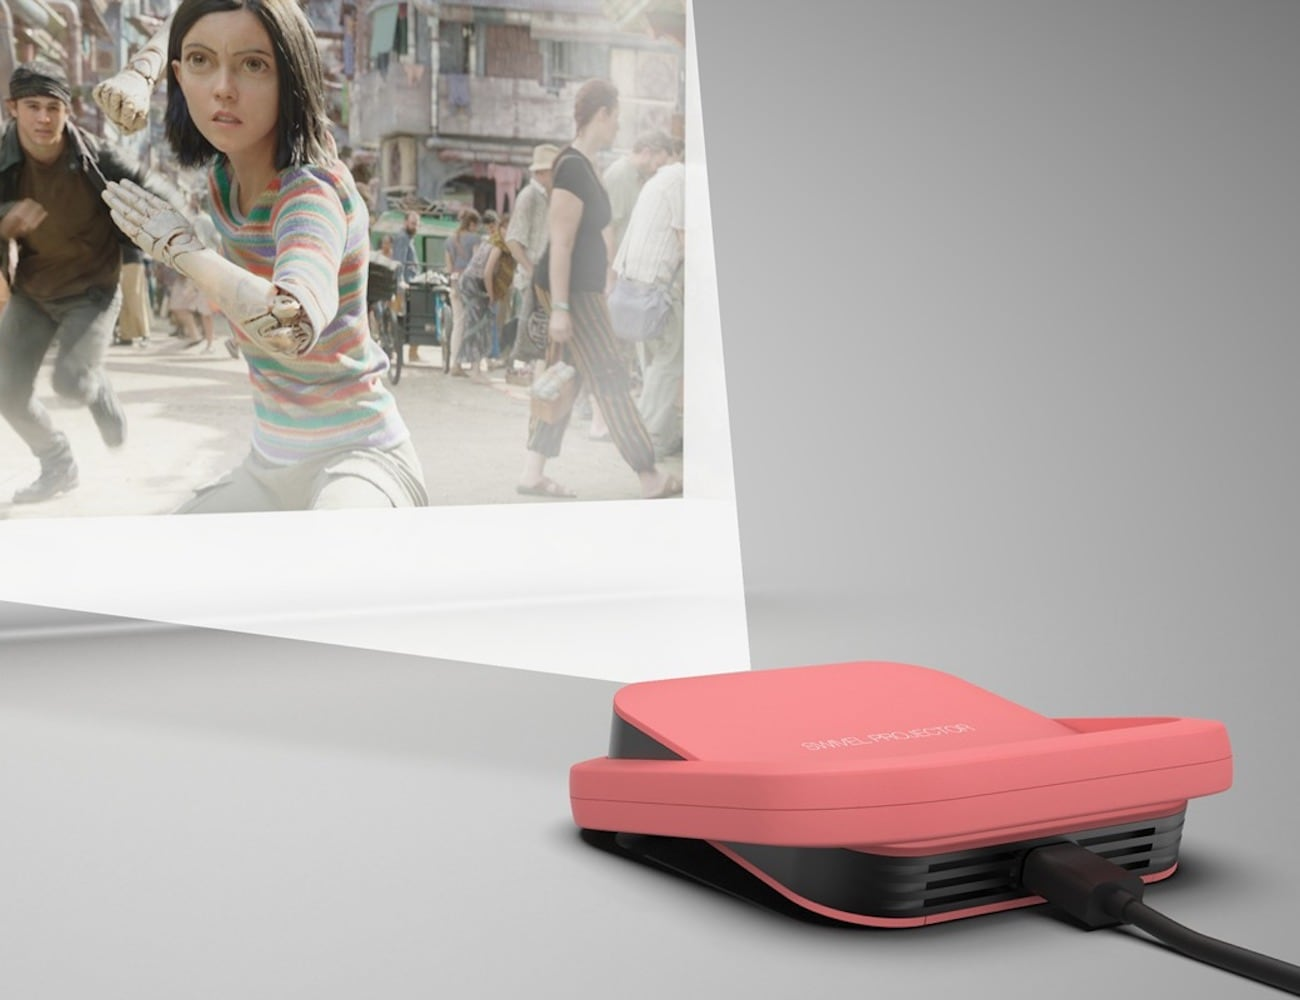 Swivel Truly Pocket-Sized Projector lets you take movies on the go